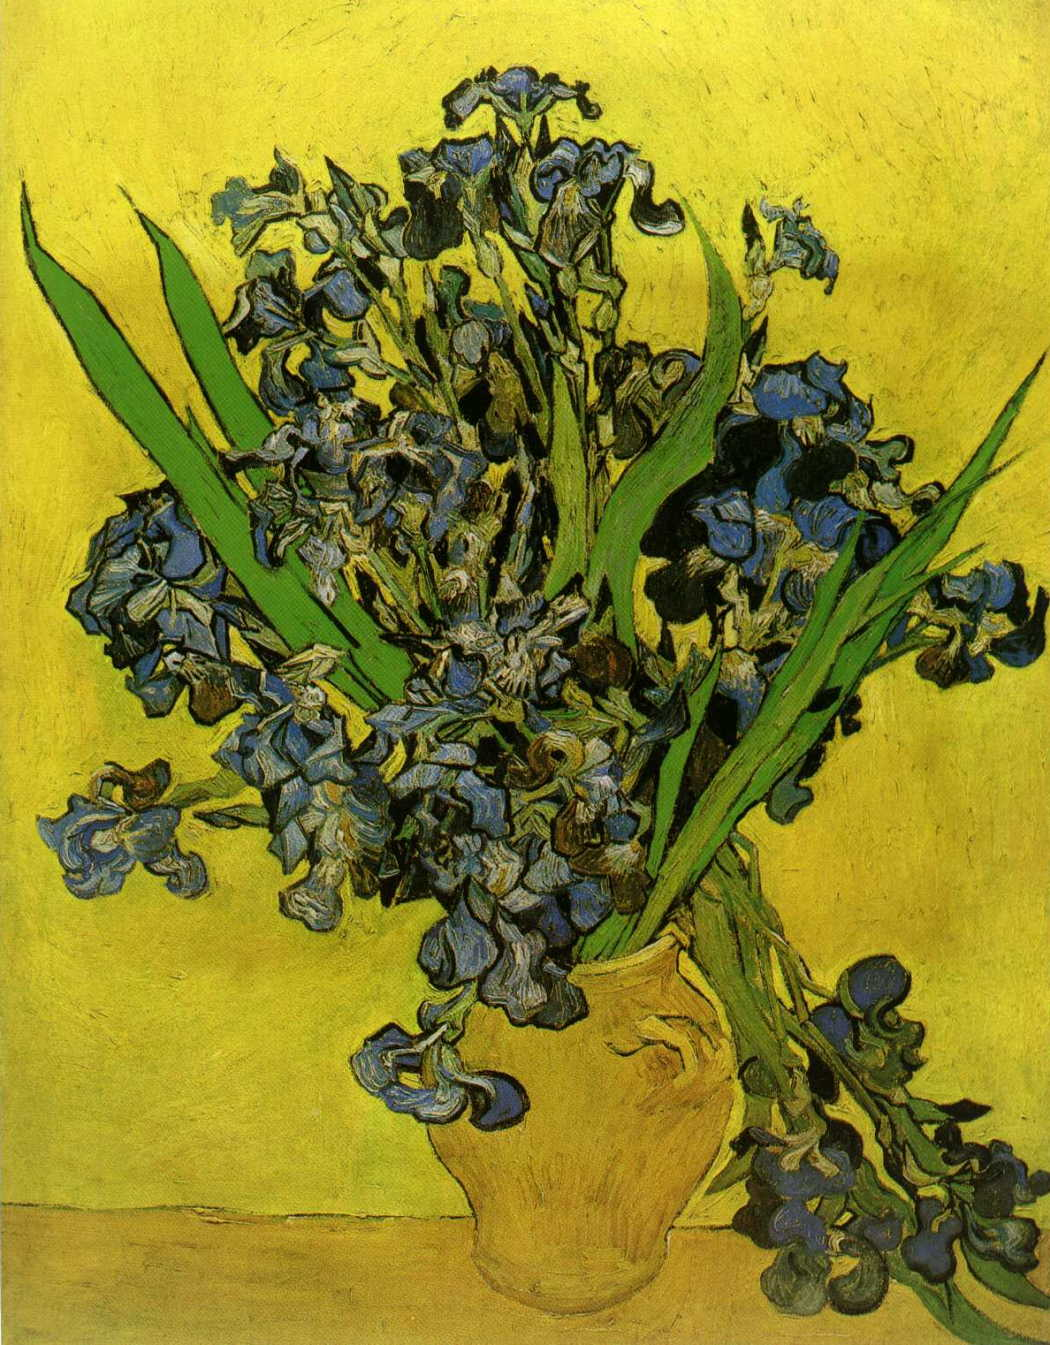 Still Life Vase with Irises Against a Yellow Background